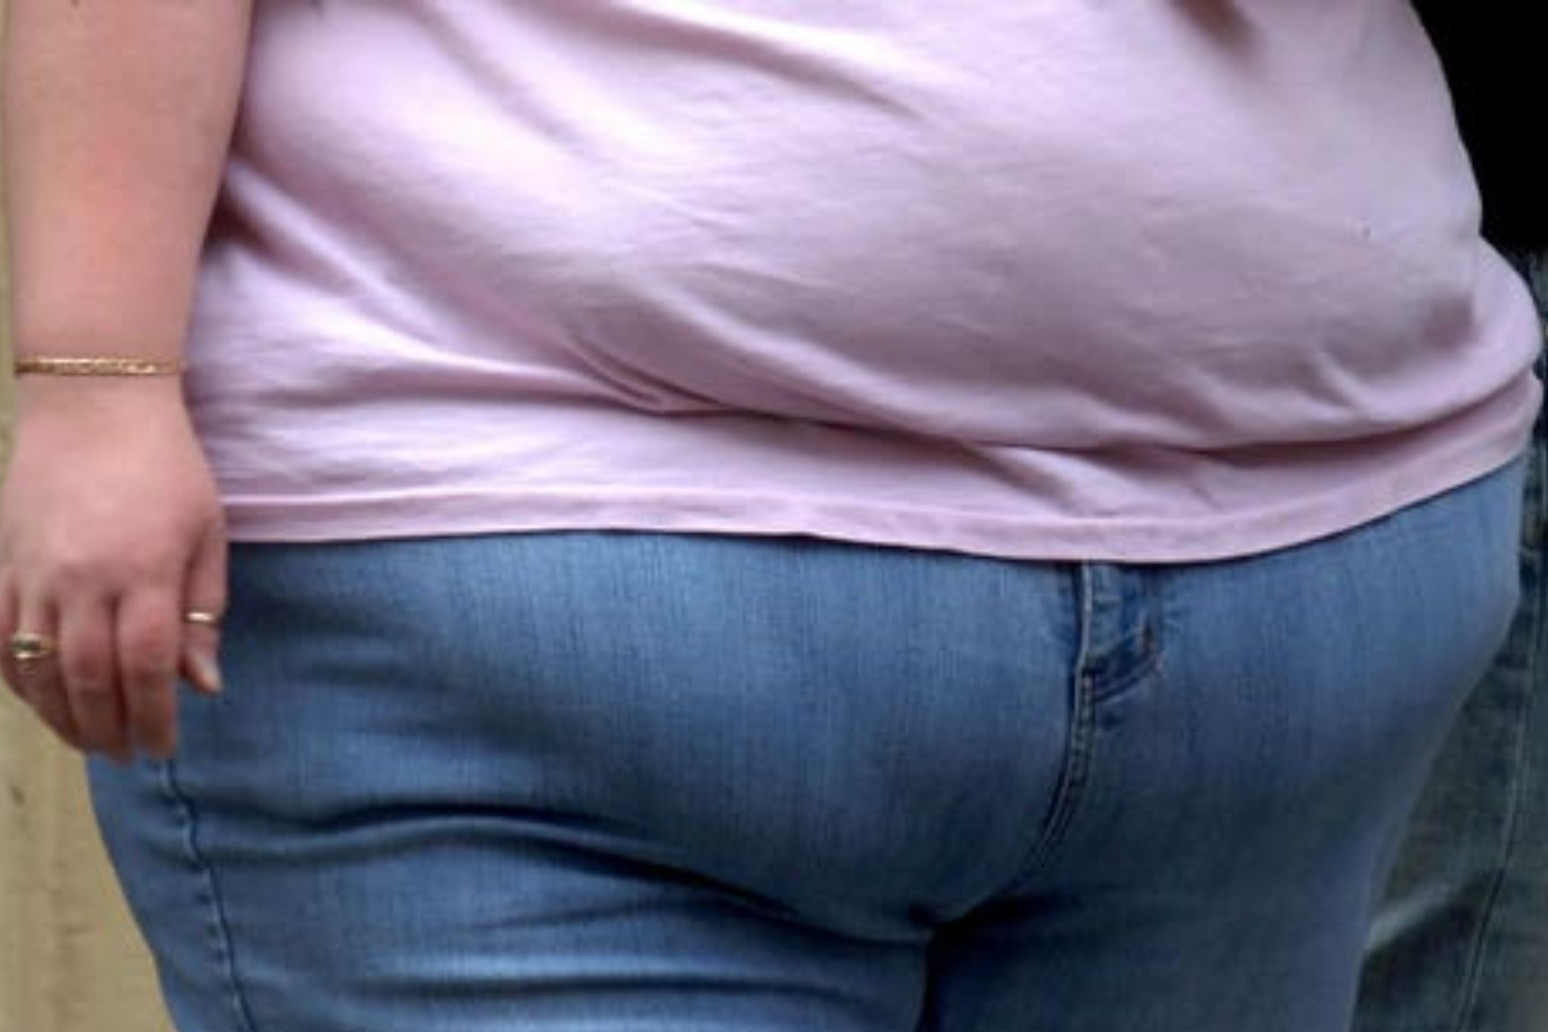 Obesity contributes to more deaths than smoking in Scotland and England – study